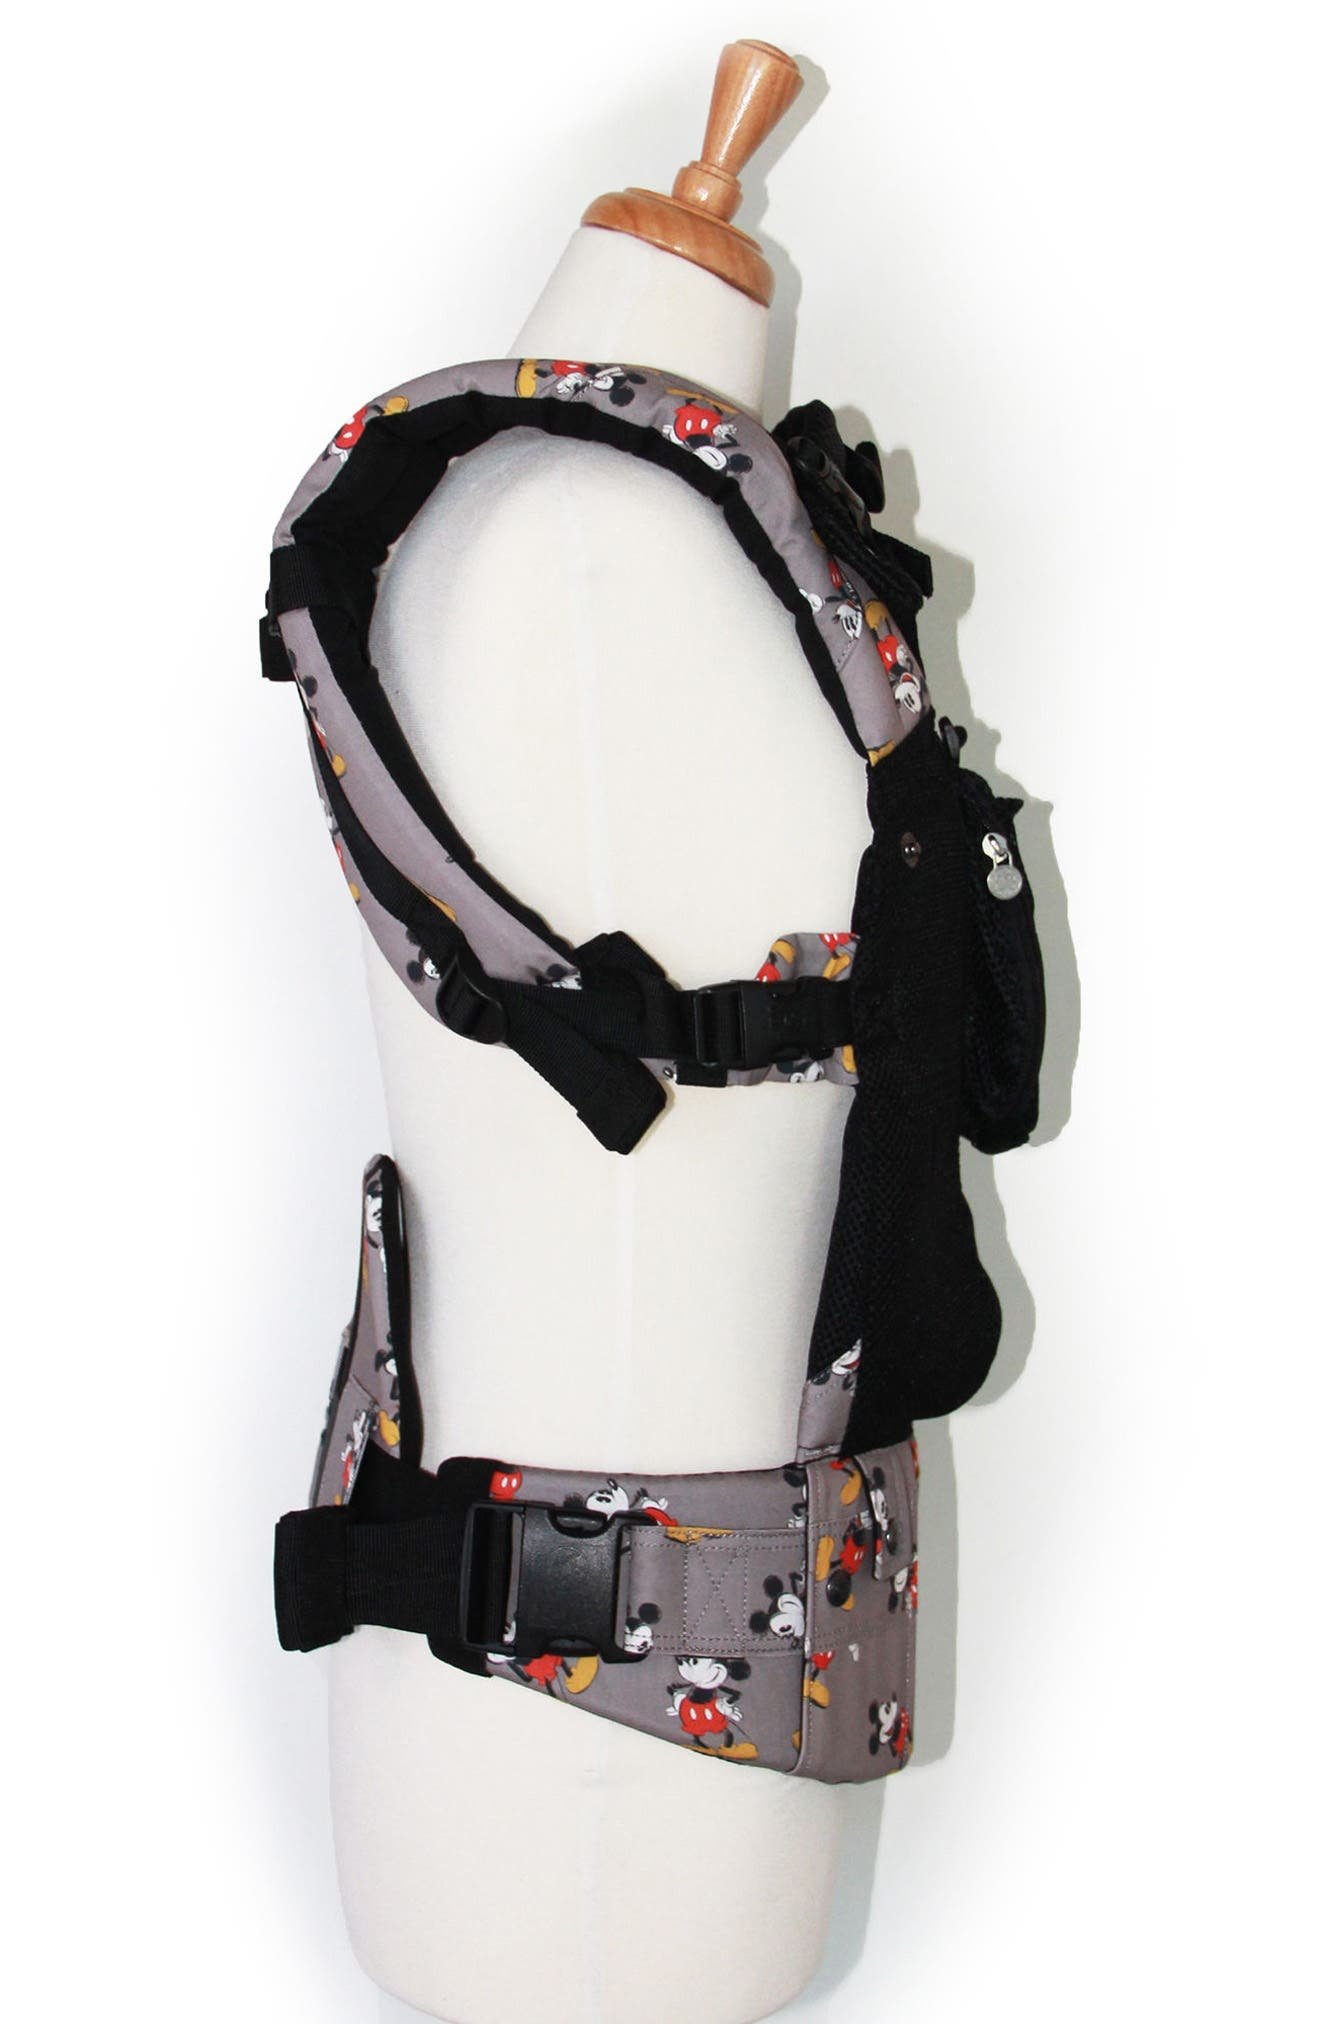 x Disney<sup>®</sup> Complete Airflow - Mickey Mouse Classic Baby Carrier,                             Alternate thumbnail 3, color,                             BLACK